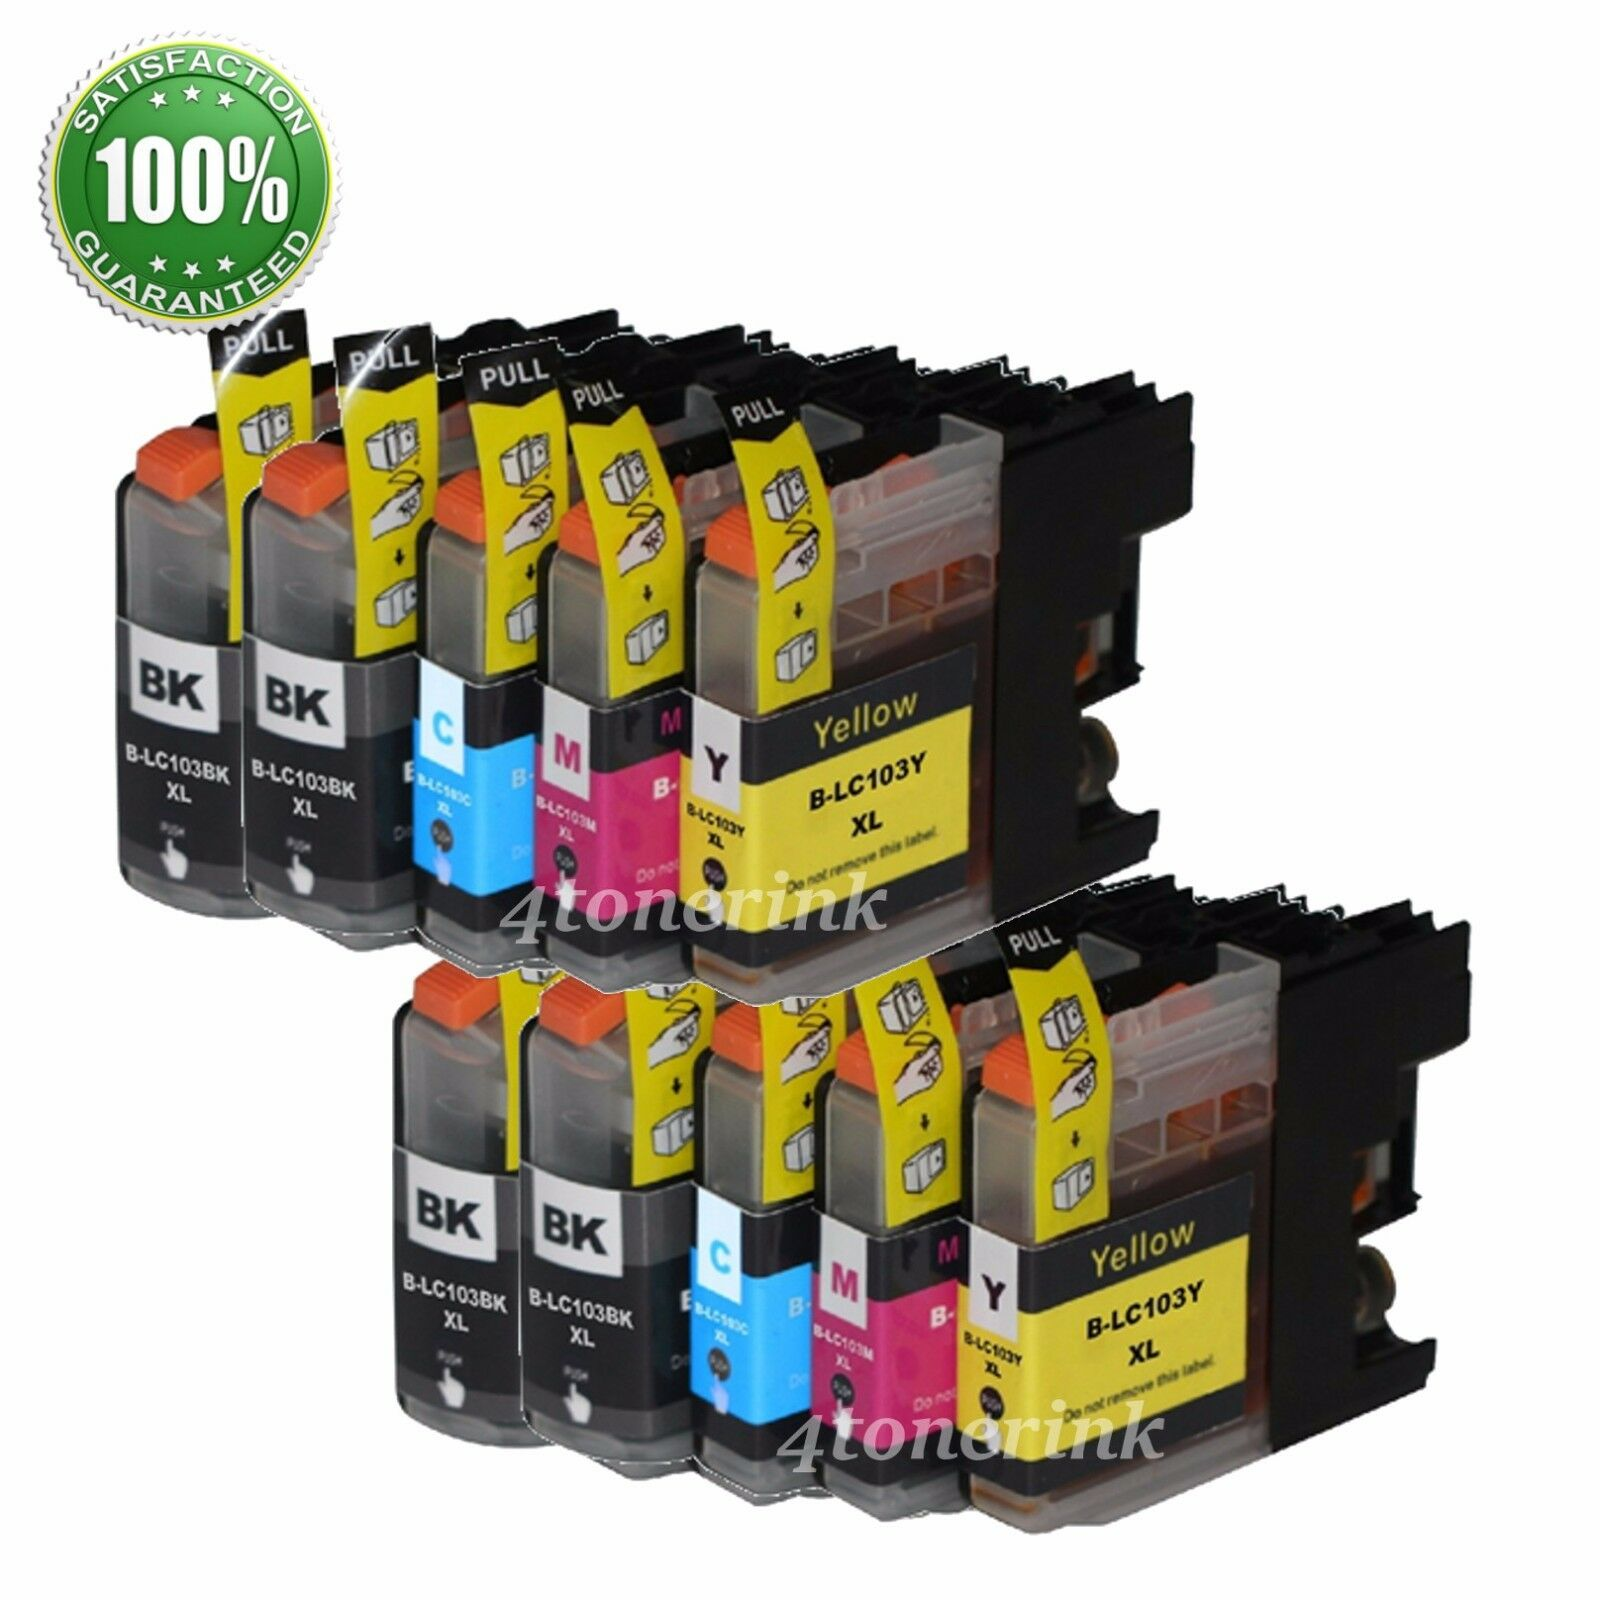 10pk Ink Cartridge For Brother LC103XL LC-103XL MFC-J450dw